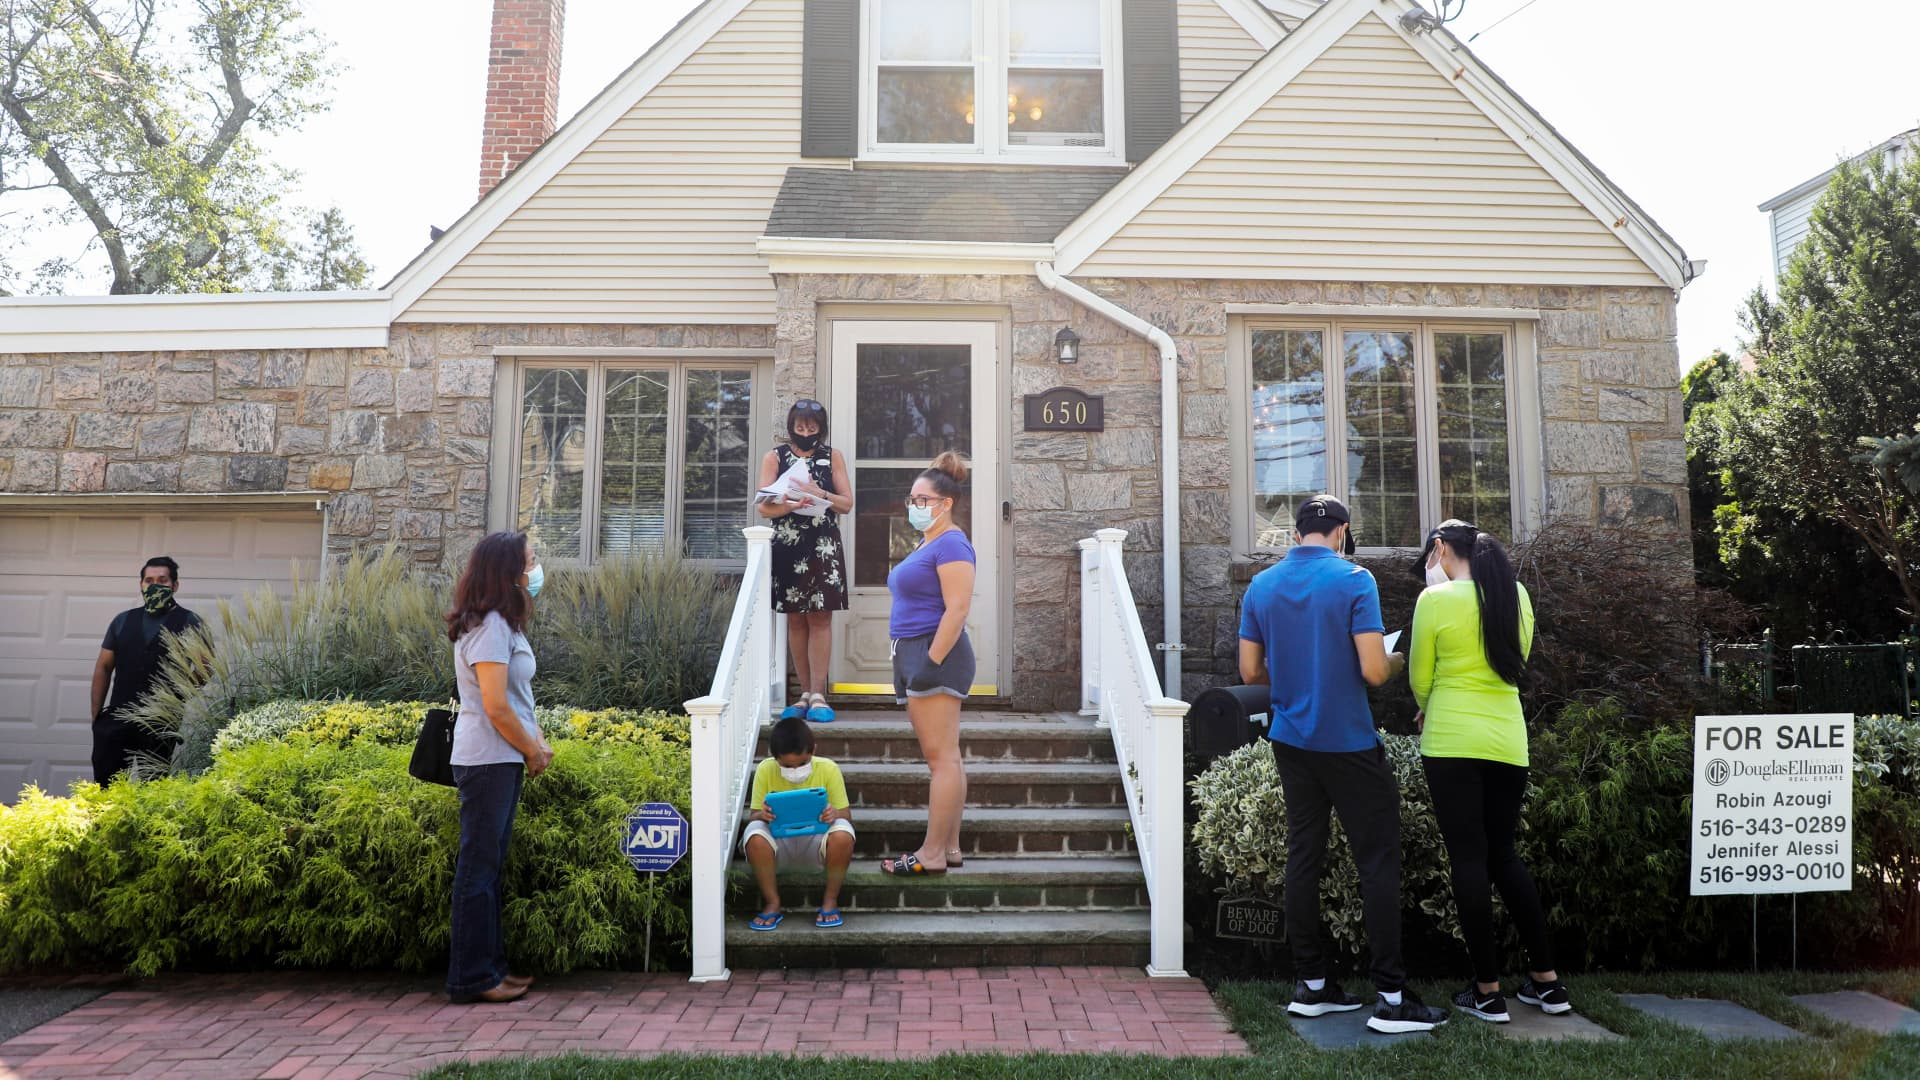 People wait to visit a house for sale in Floral Park, Nassau County, New York, the United States, on Sept. 6, 2020.